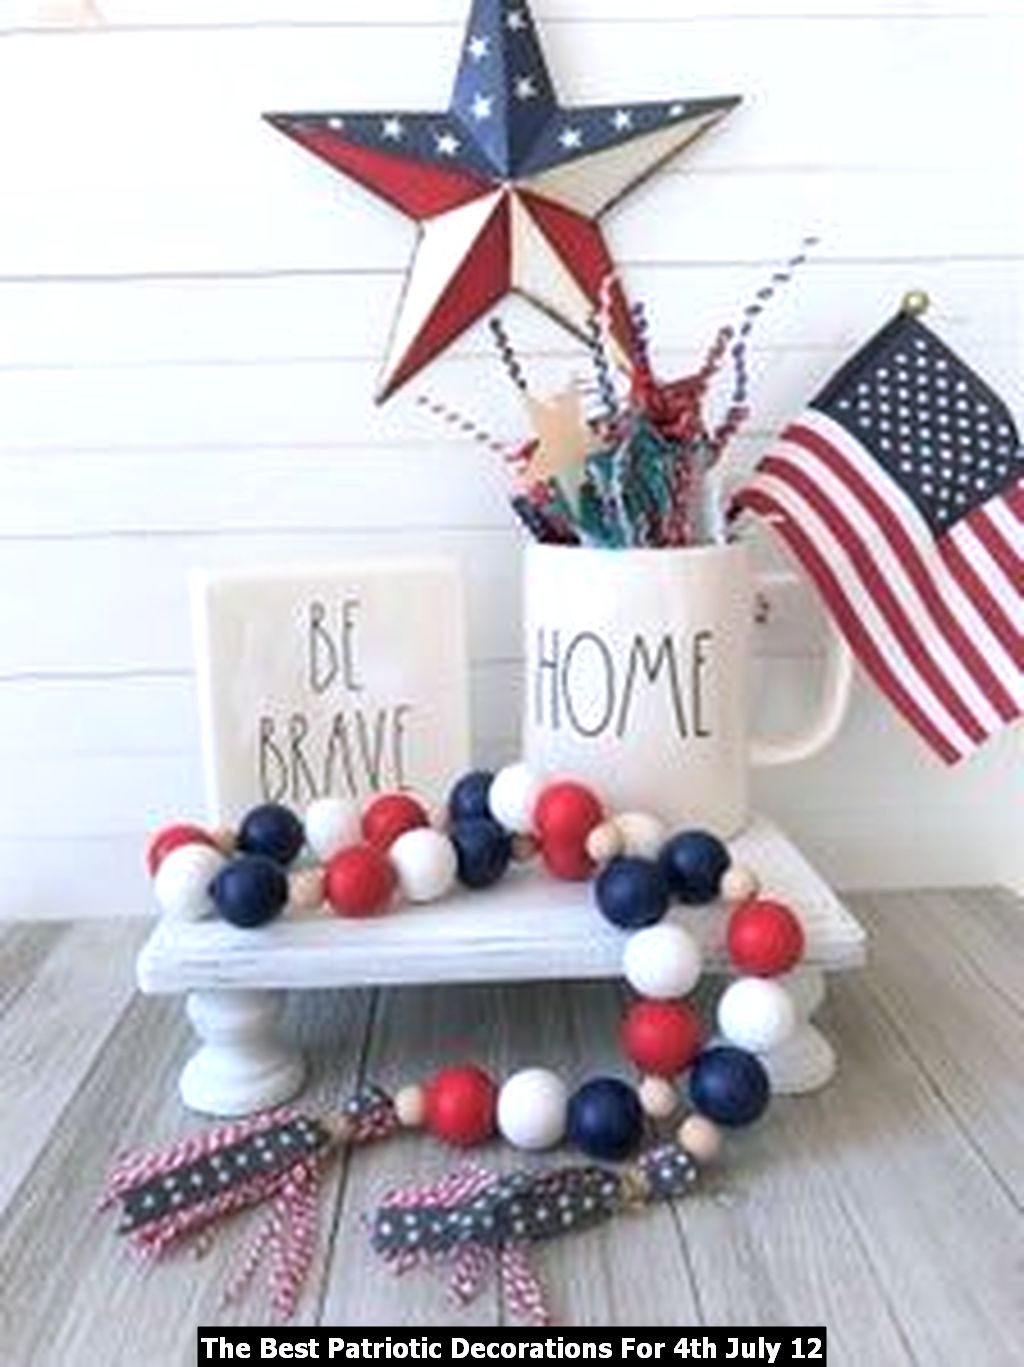 The Best Patriotic Decorations For 4th July 12